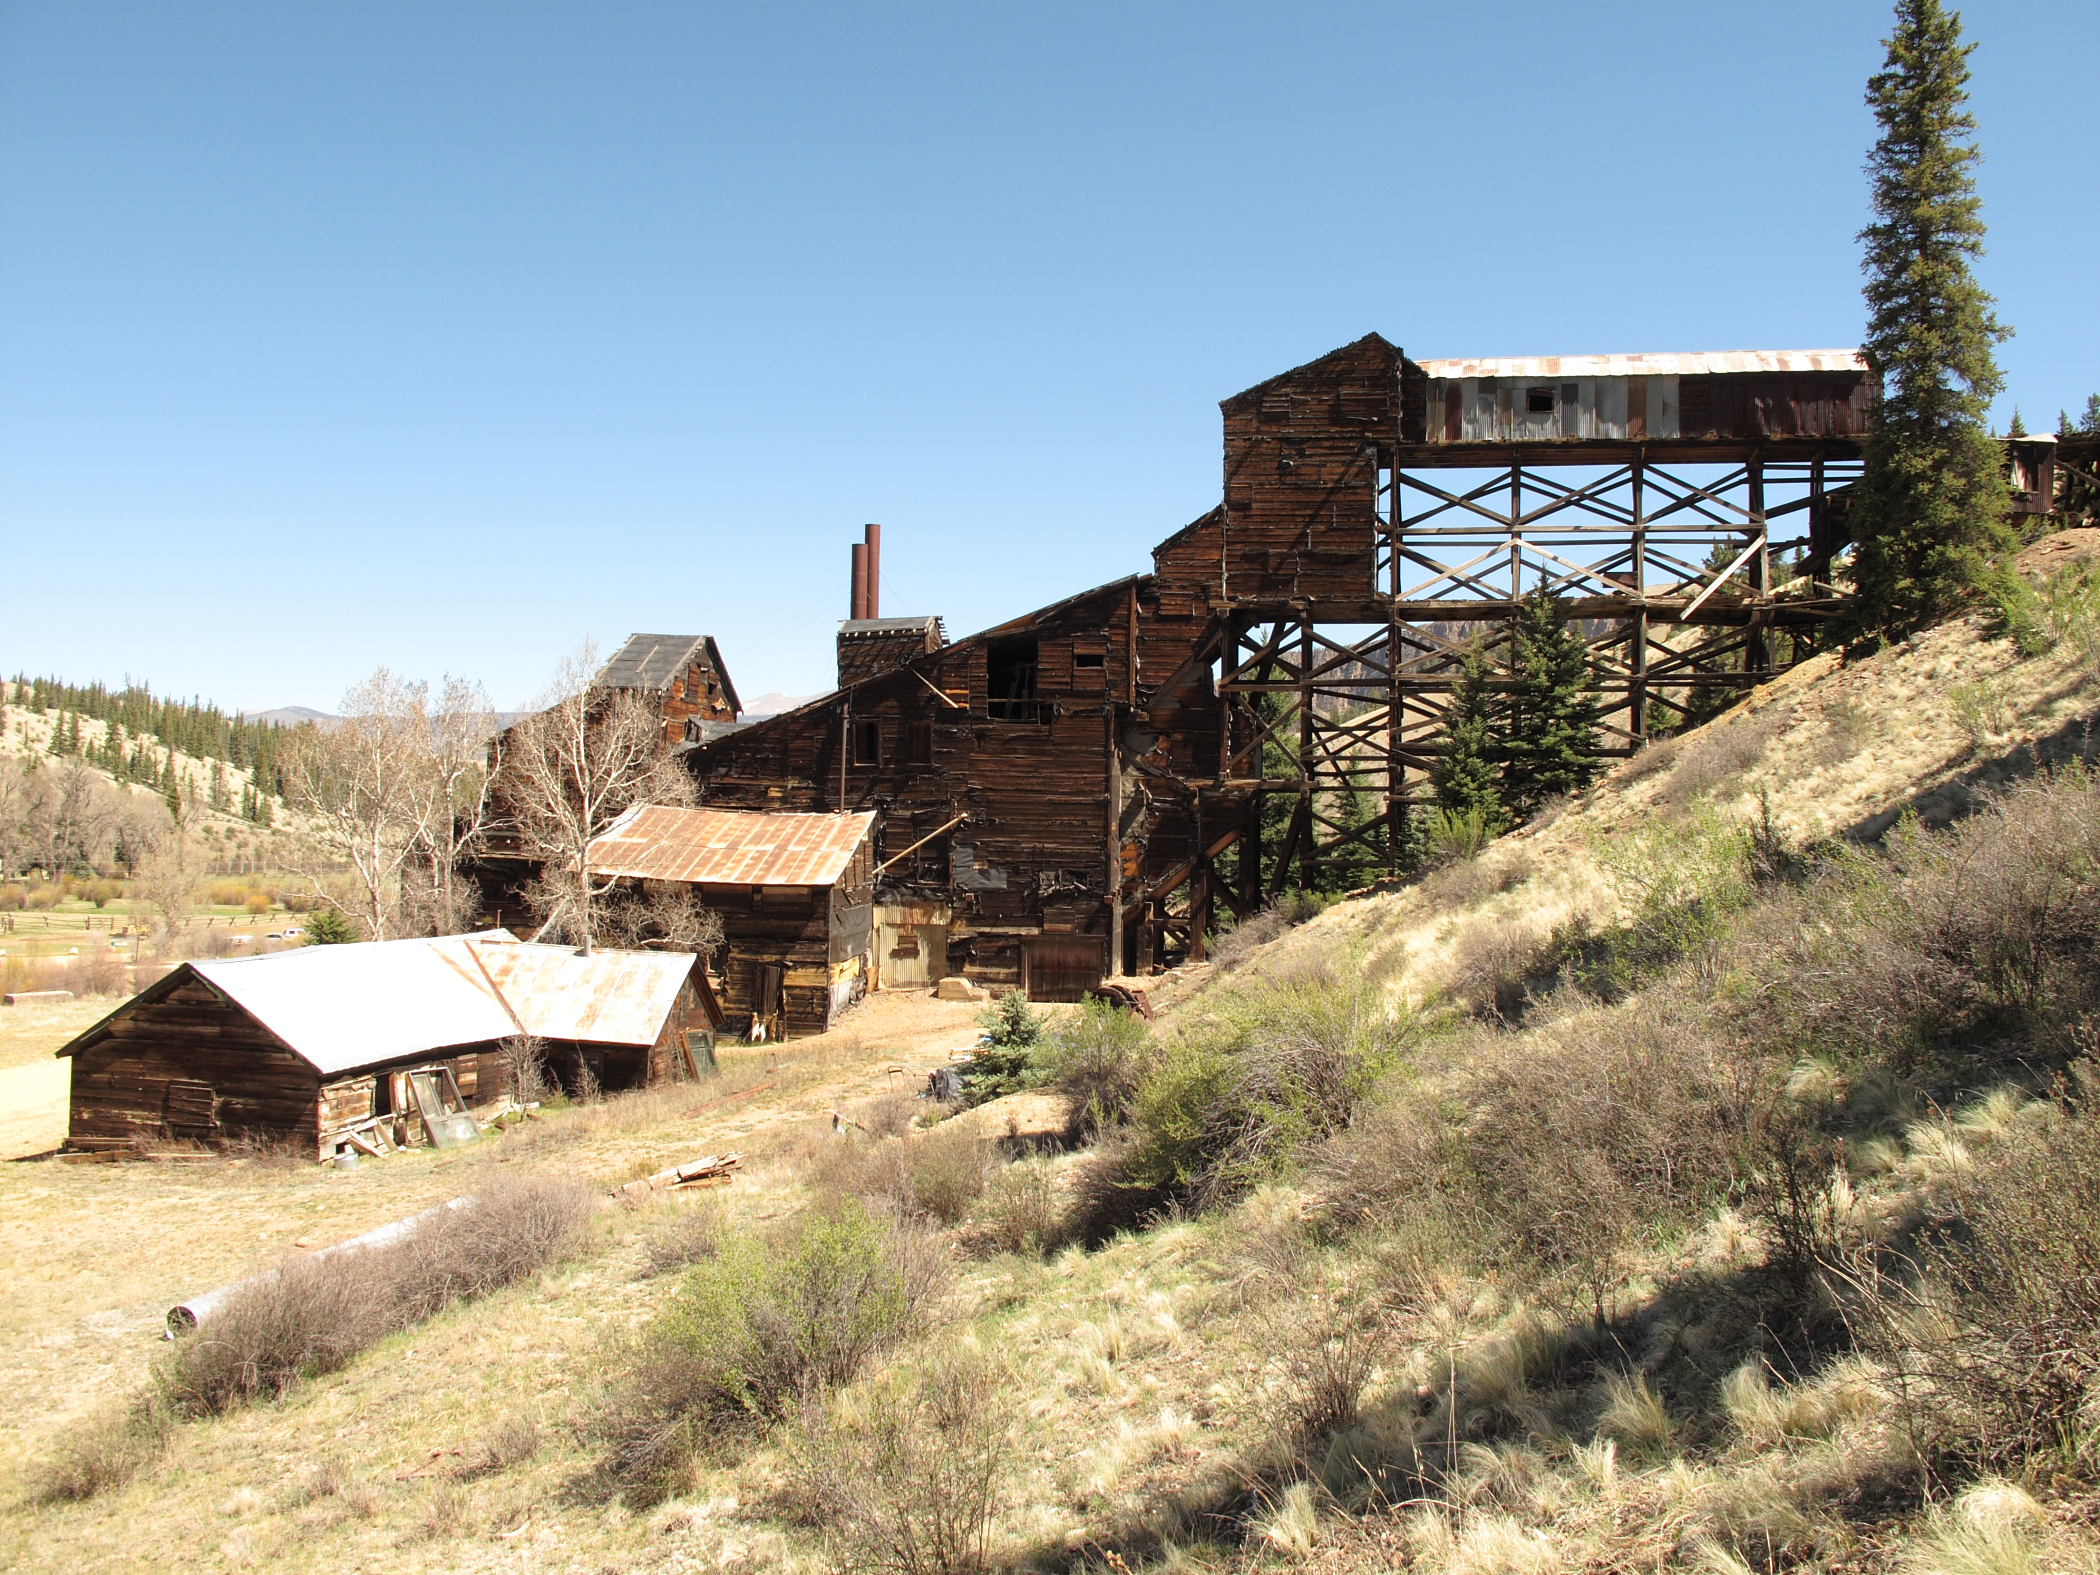 A photo of the Wagon Wheel Gap Fluorspar Mine and Mill.